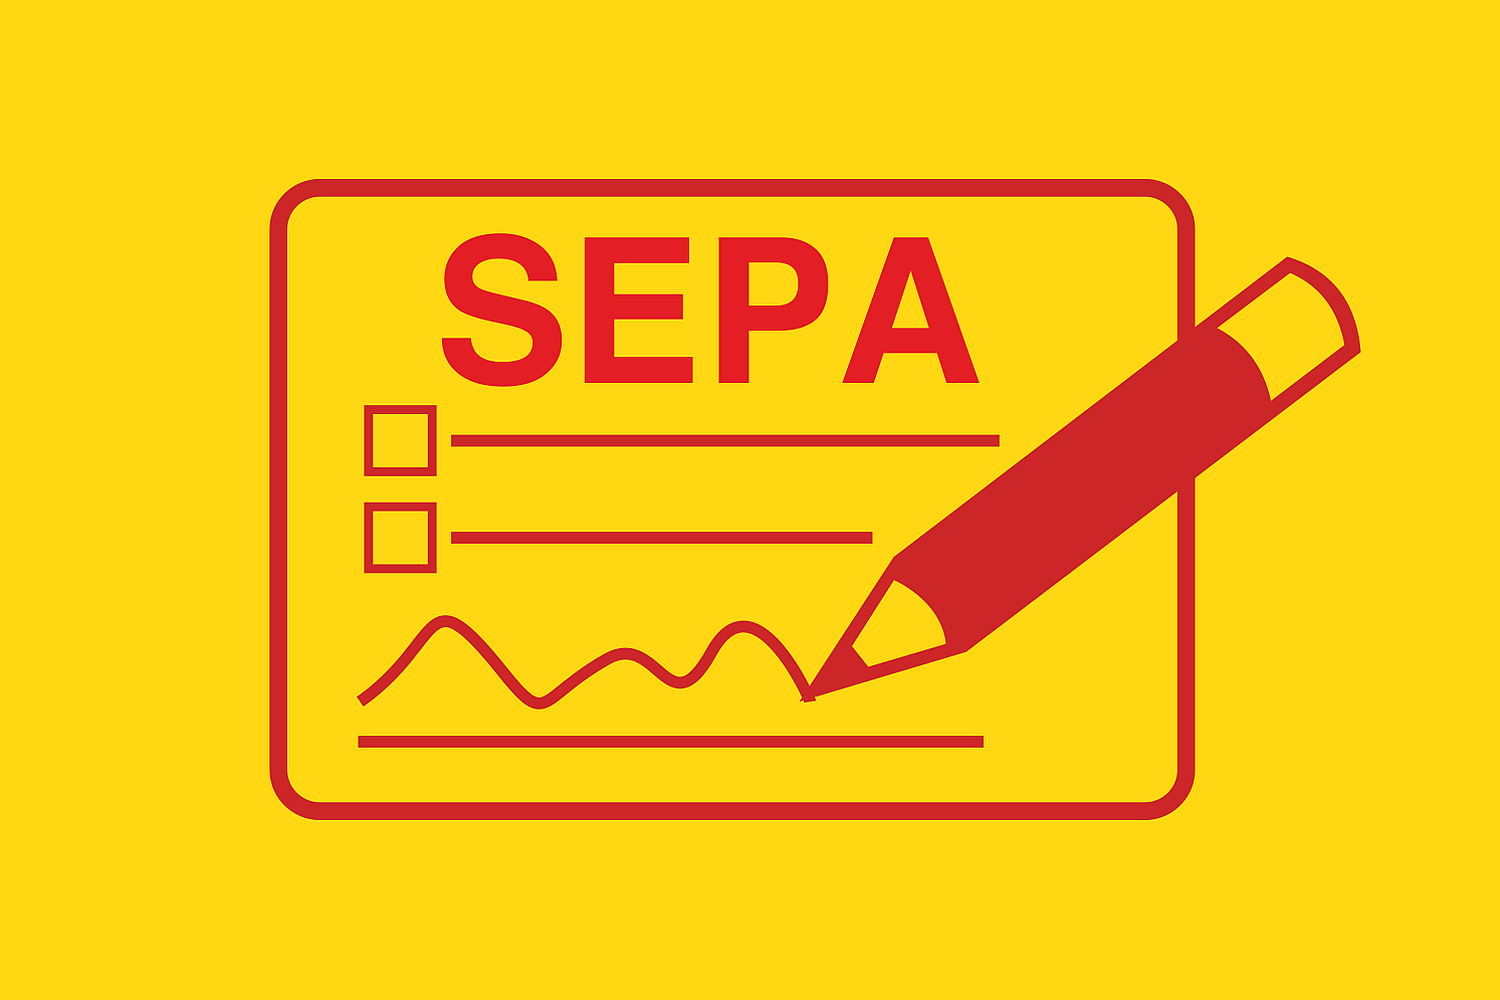 icon-sepa.png